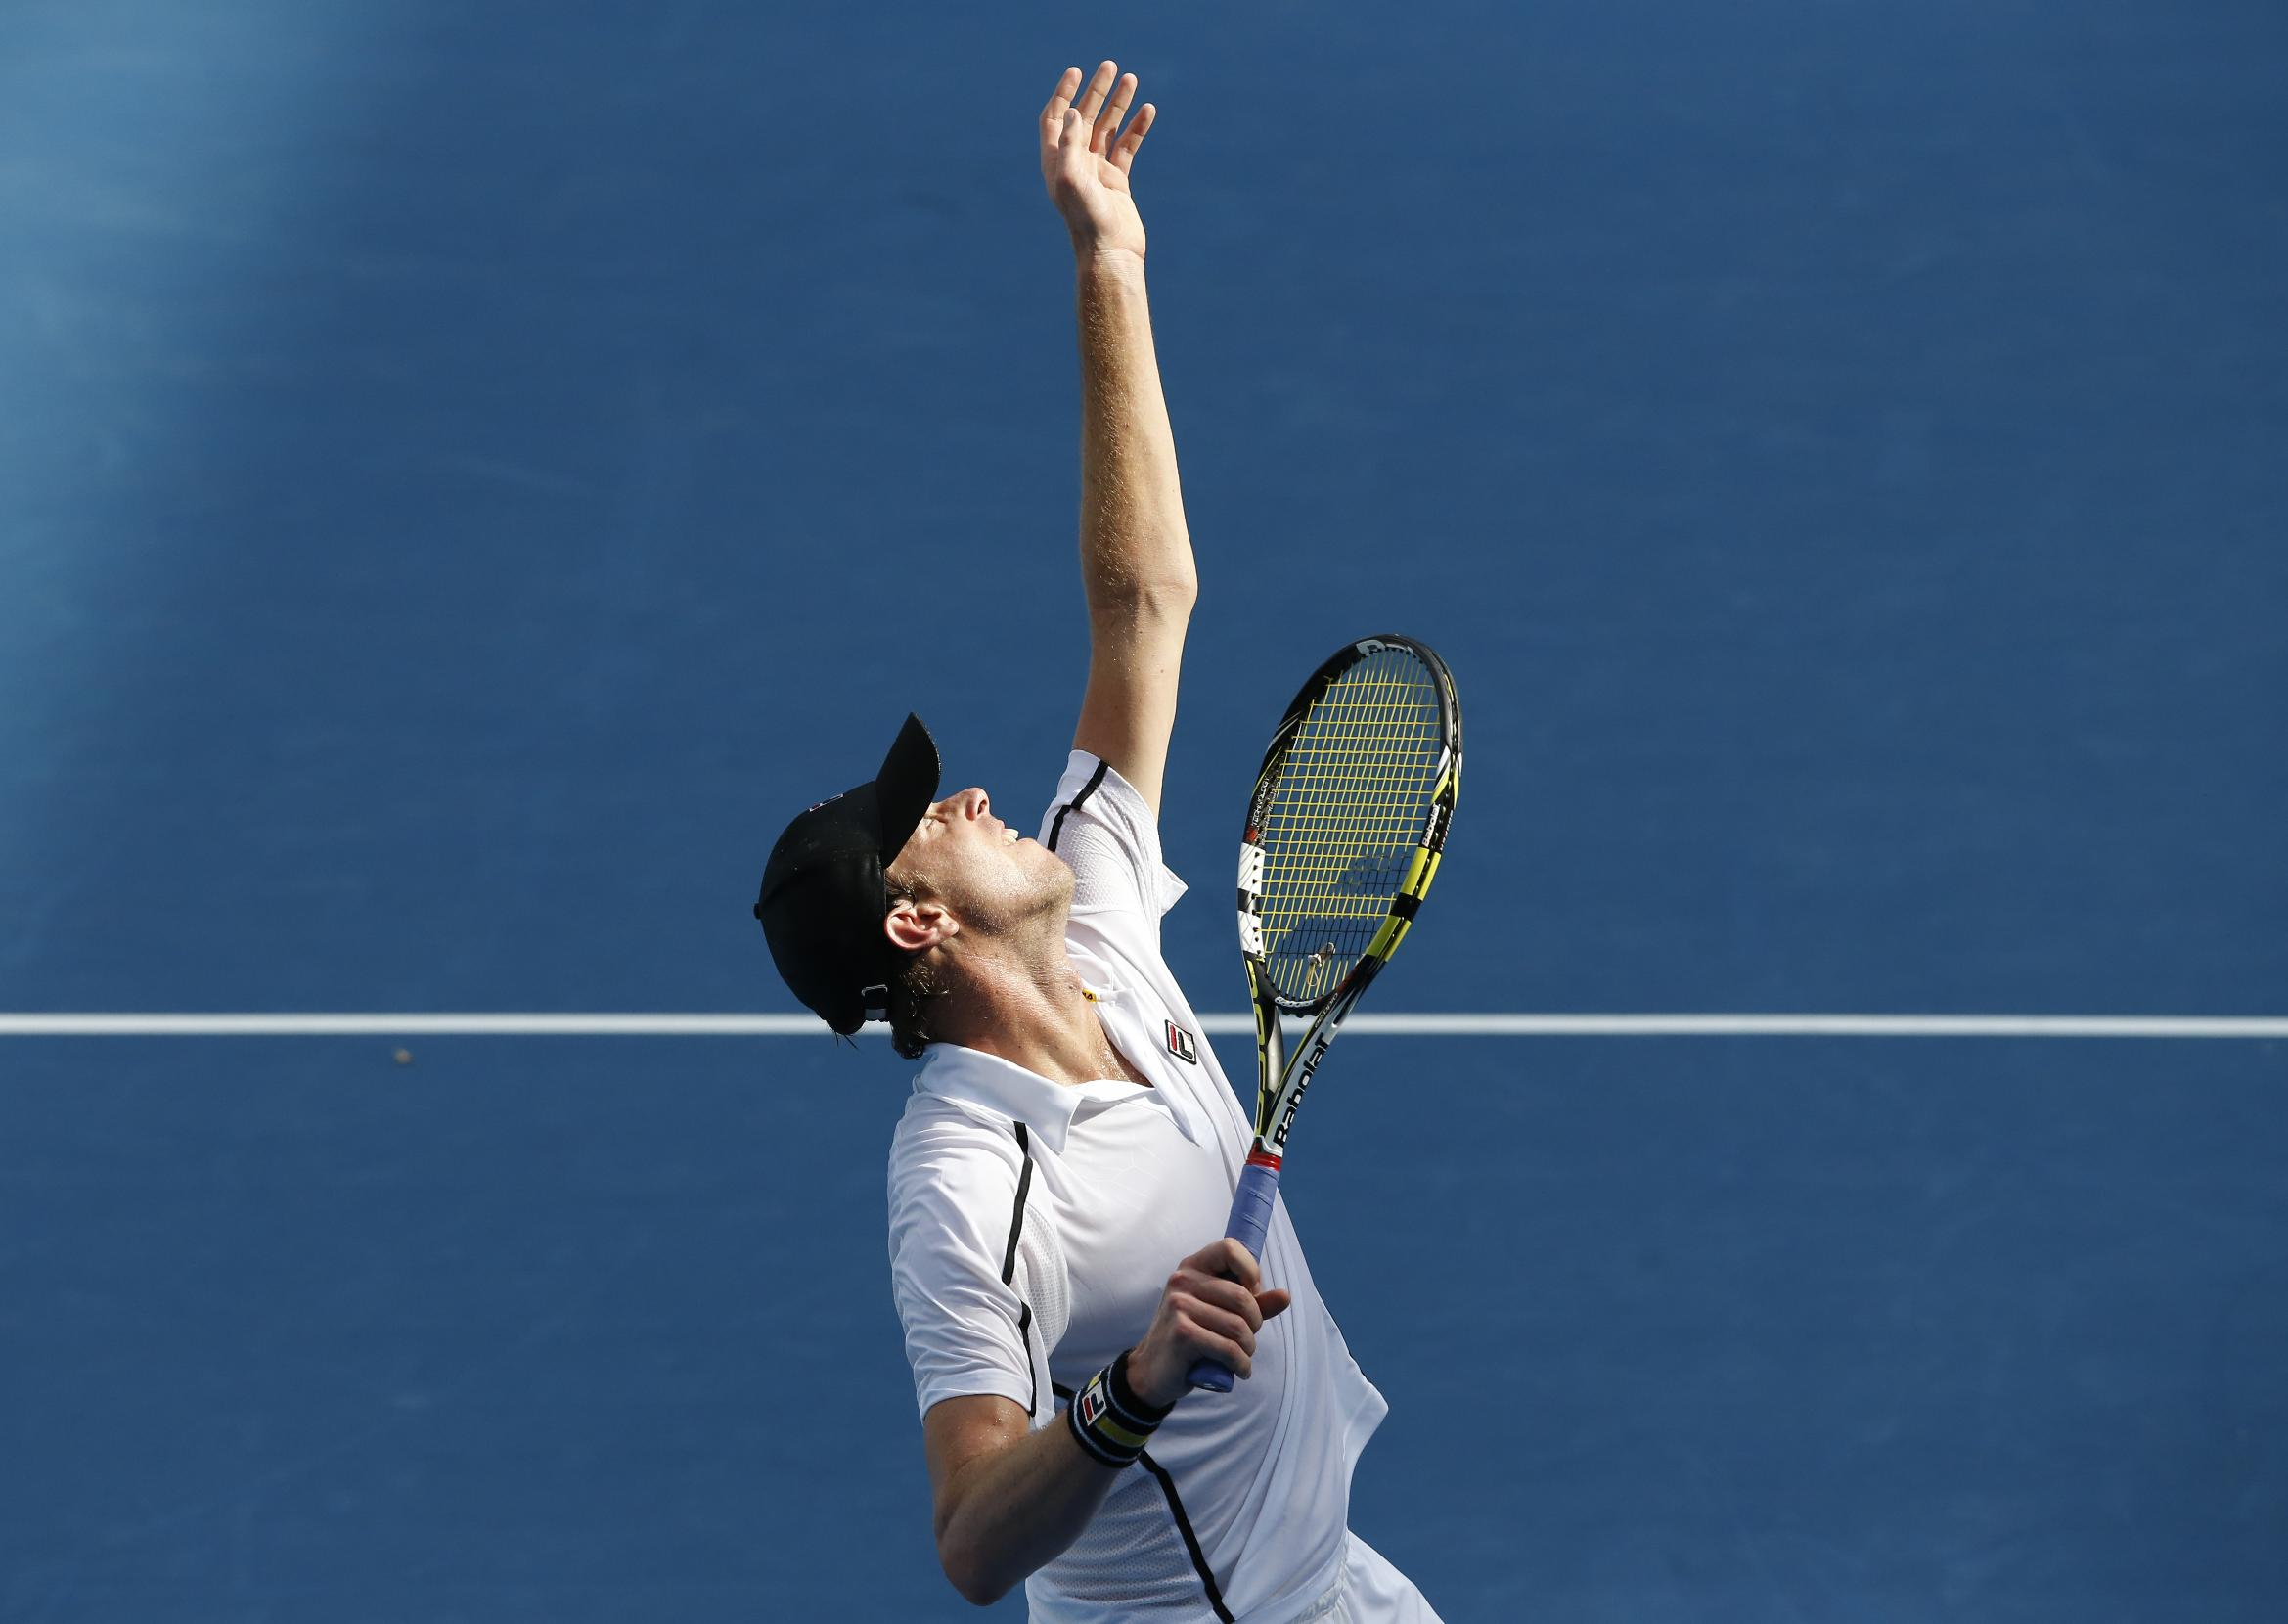 Sam Querrey of the U.S. serves to Ernests Gulbis of Latvia  during their second round match at the Australian Open tennis championship in Melbourne, Australia, Wednesday, Jan. 15, 2014